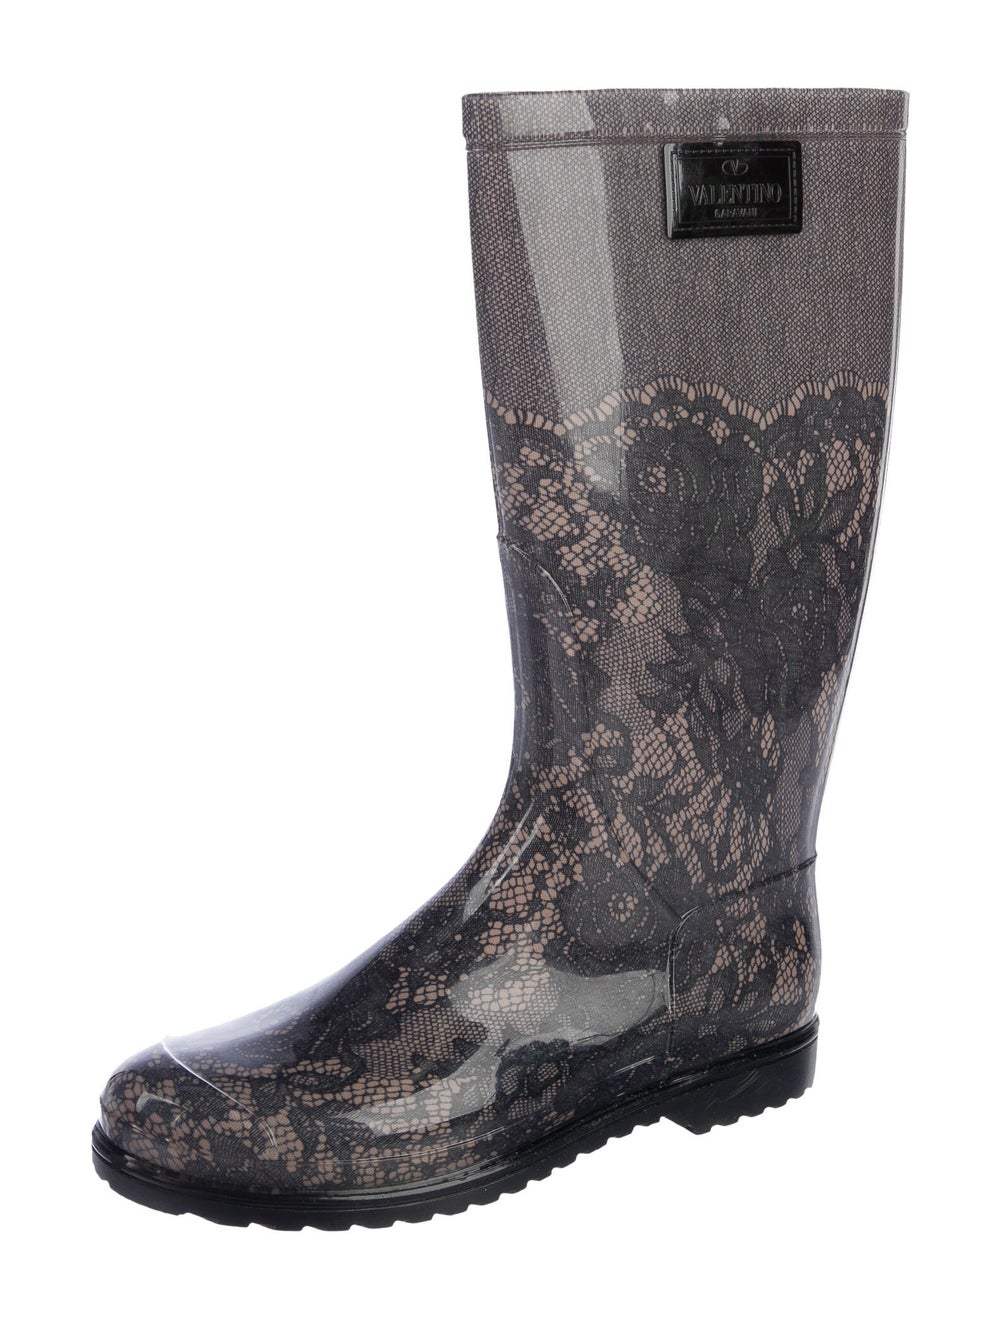 Valentino Rubber Printed Rain Boots w/ Tags Grey - image 2